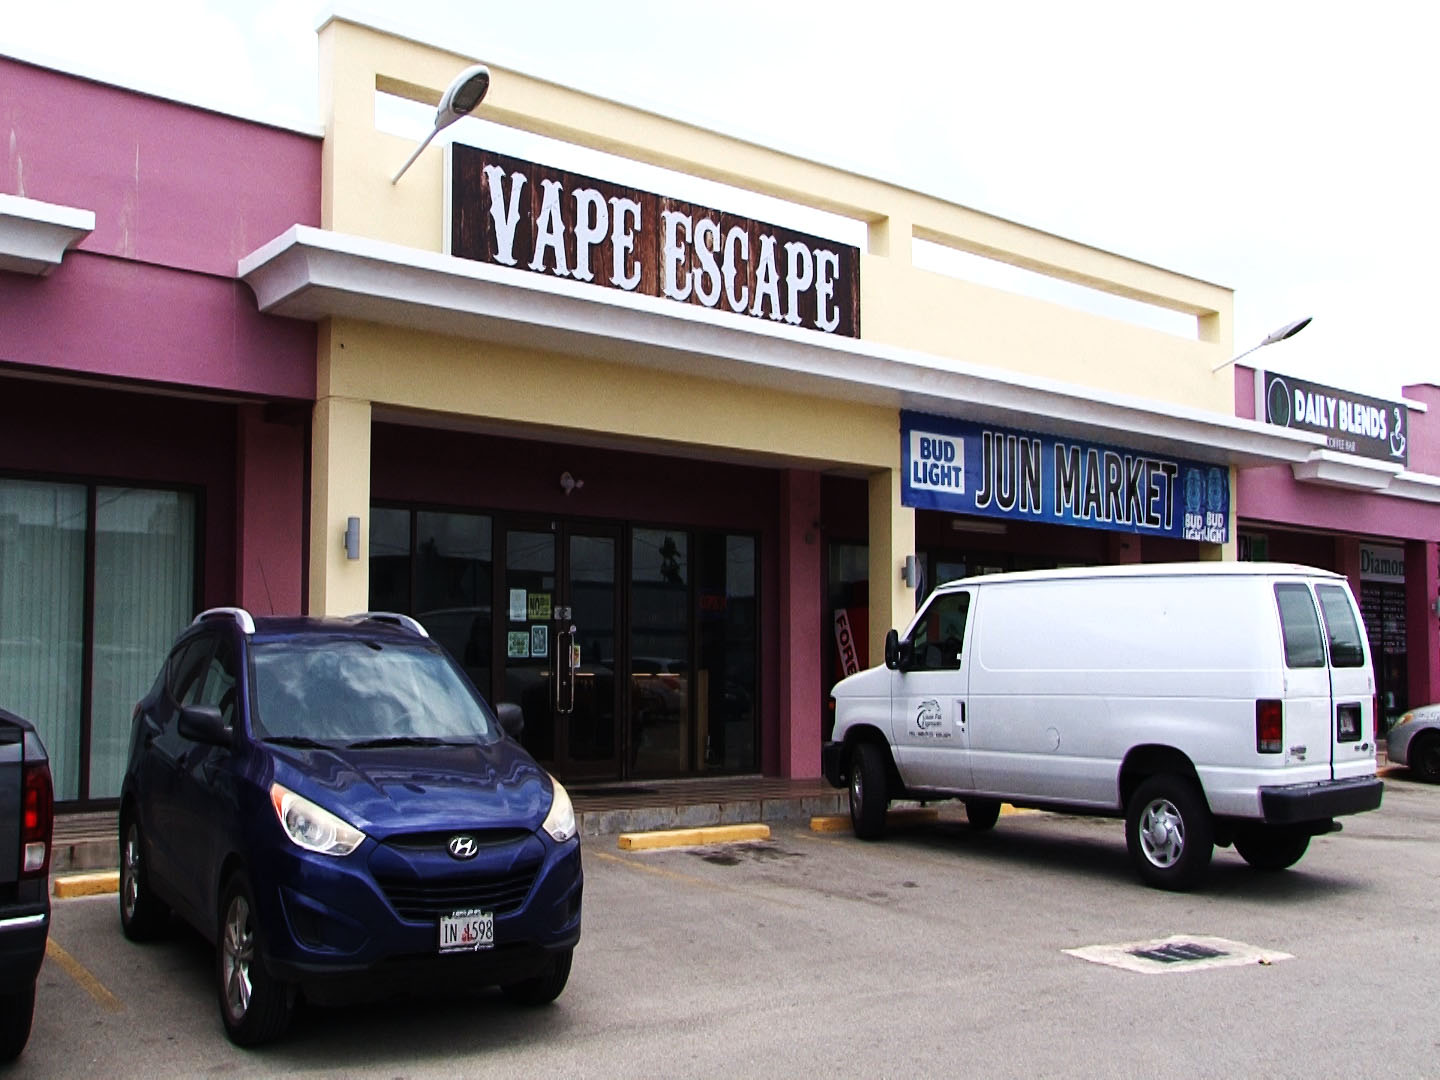 Assistance sought in attempted vape shop break-in | PNC News First